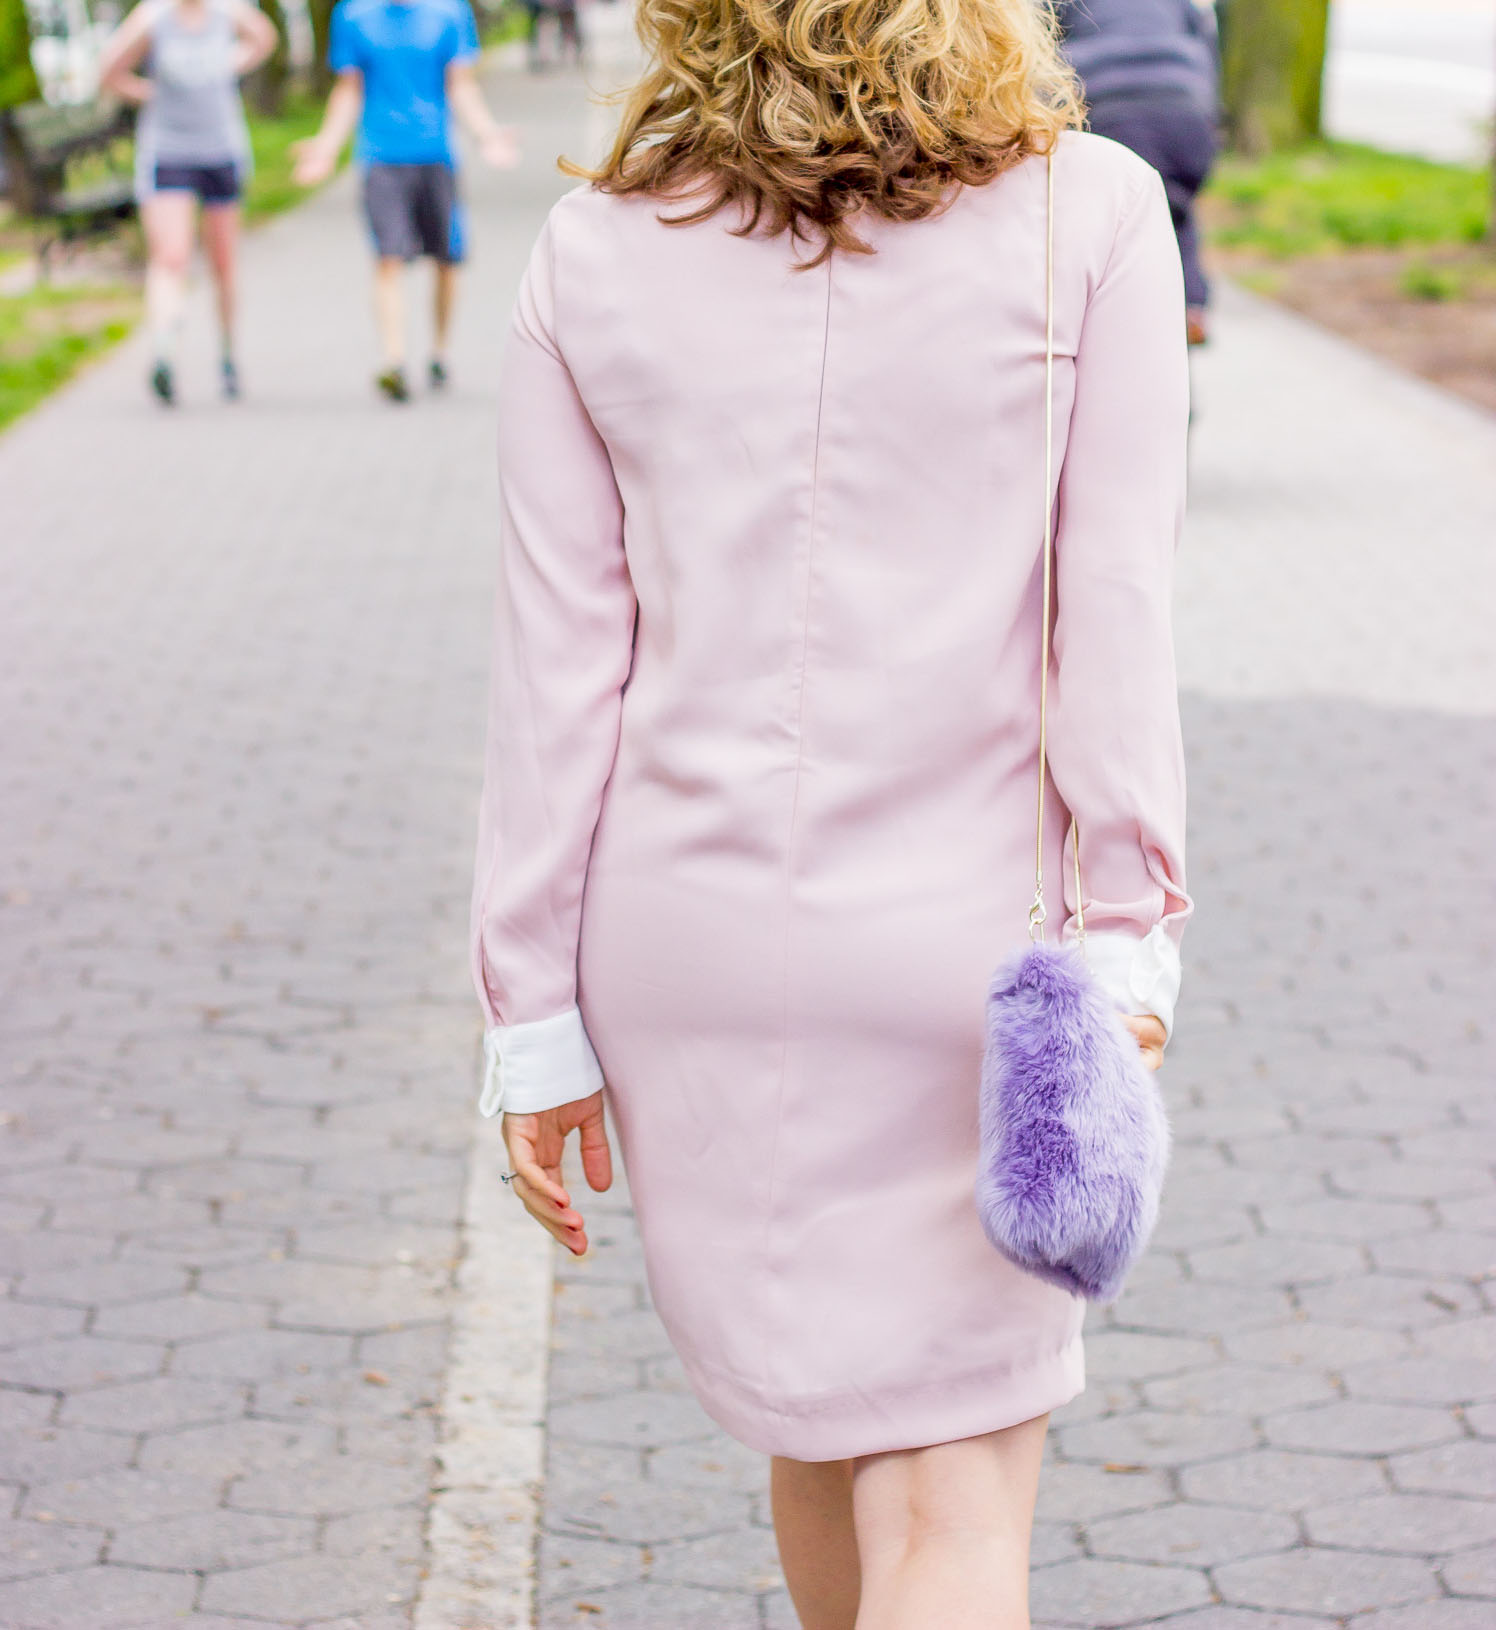 Victoria Beckham dress on Belle Meets World blog